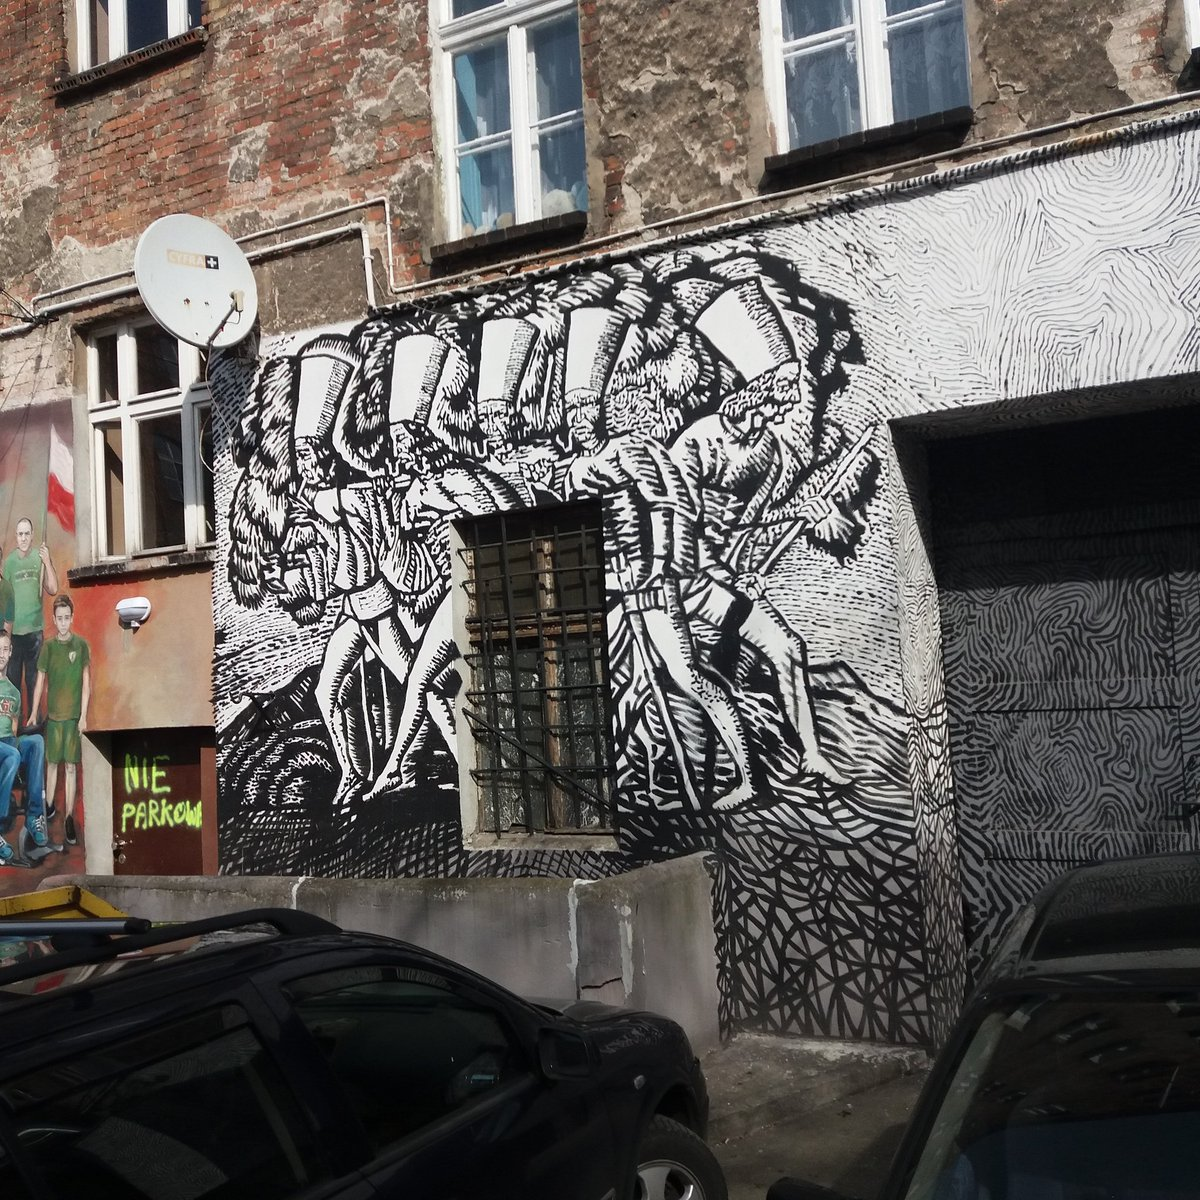 #graffiti #streetart #mural #wroclaw #Wrocław #arte #art #Walls #Poland #Polska #pl #photography #photooftheday #photo #picoftheday #PictureOfTheDay https://t.co/zbPqDIRtGE